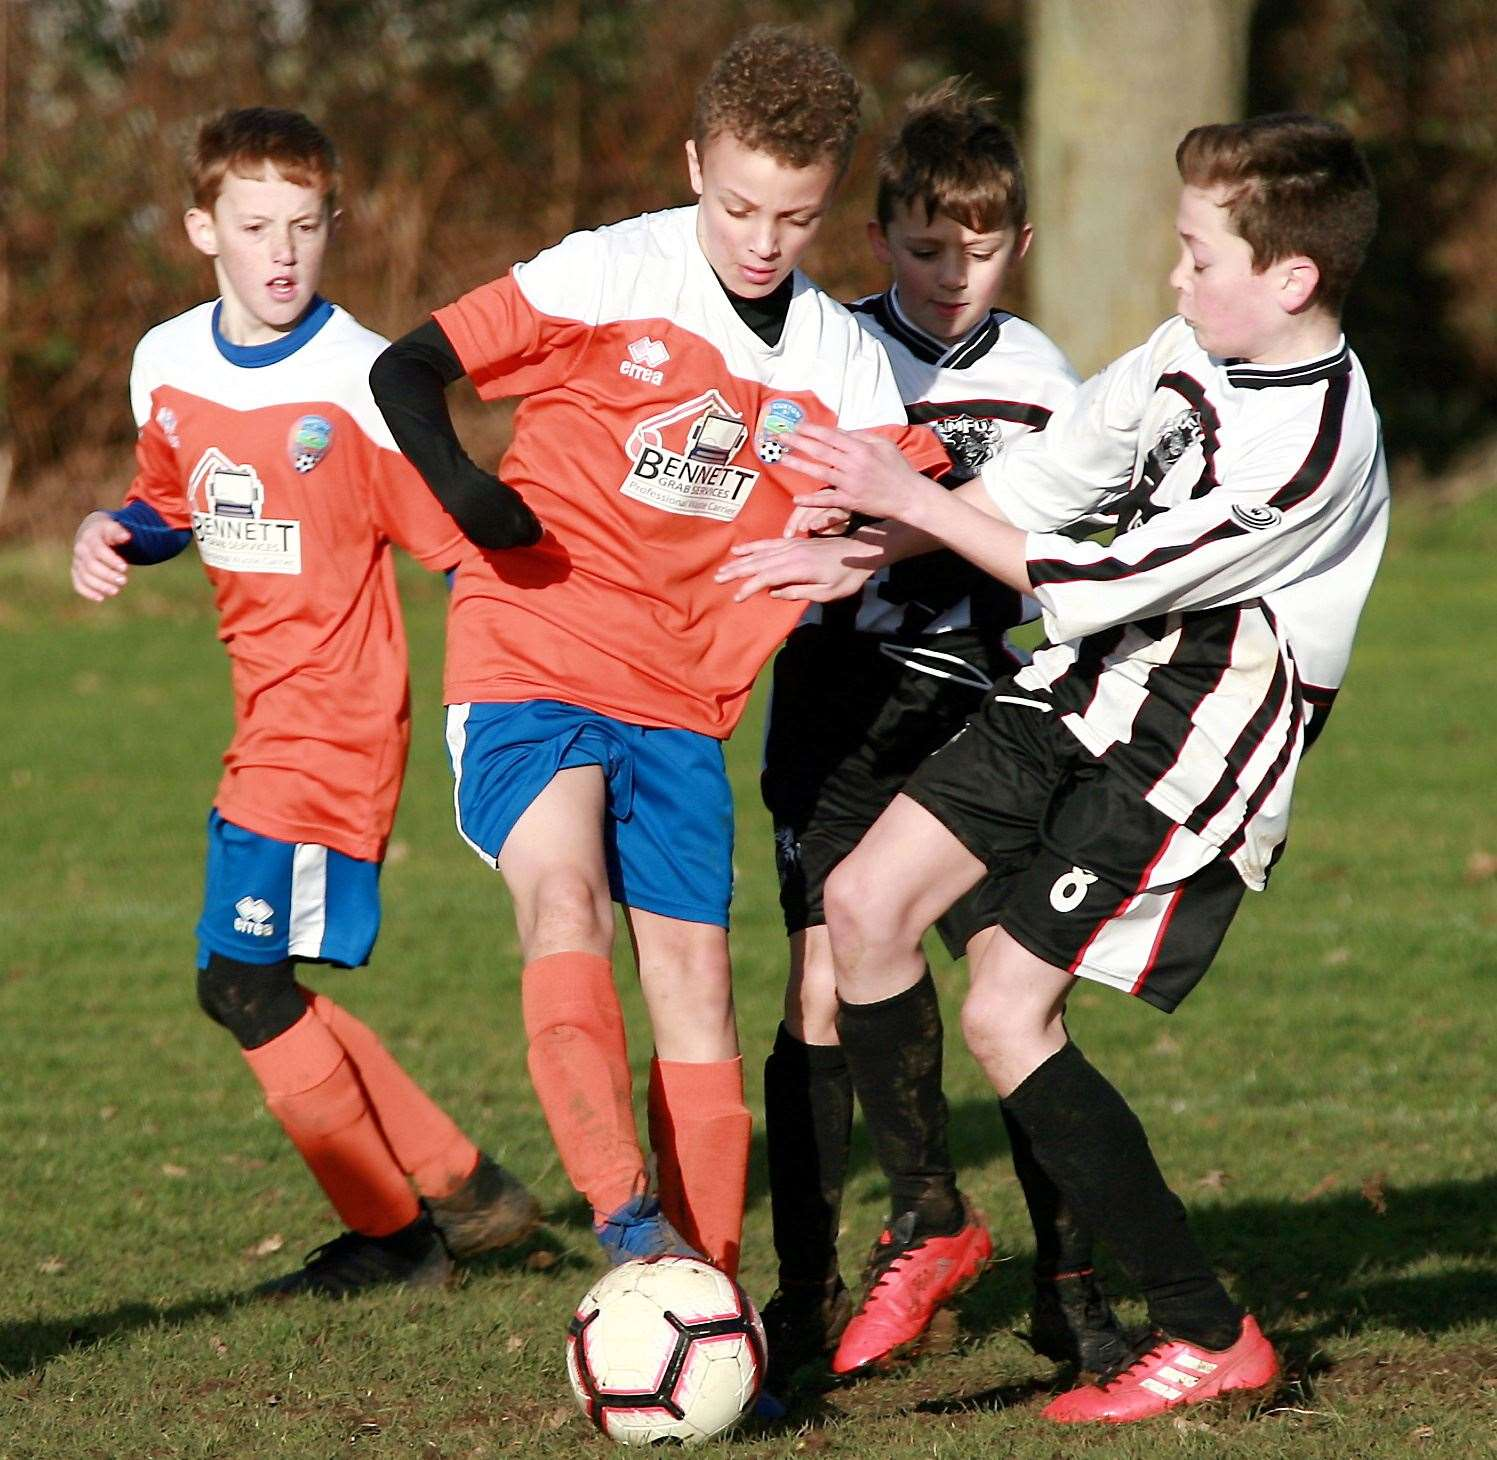 Cuxton 91 Dynamos under-12 (orange) take on Milton and Fulston United Zebras under-12s. Picture: Phil Lee FM26563351